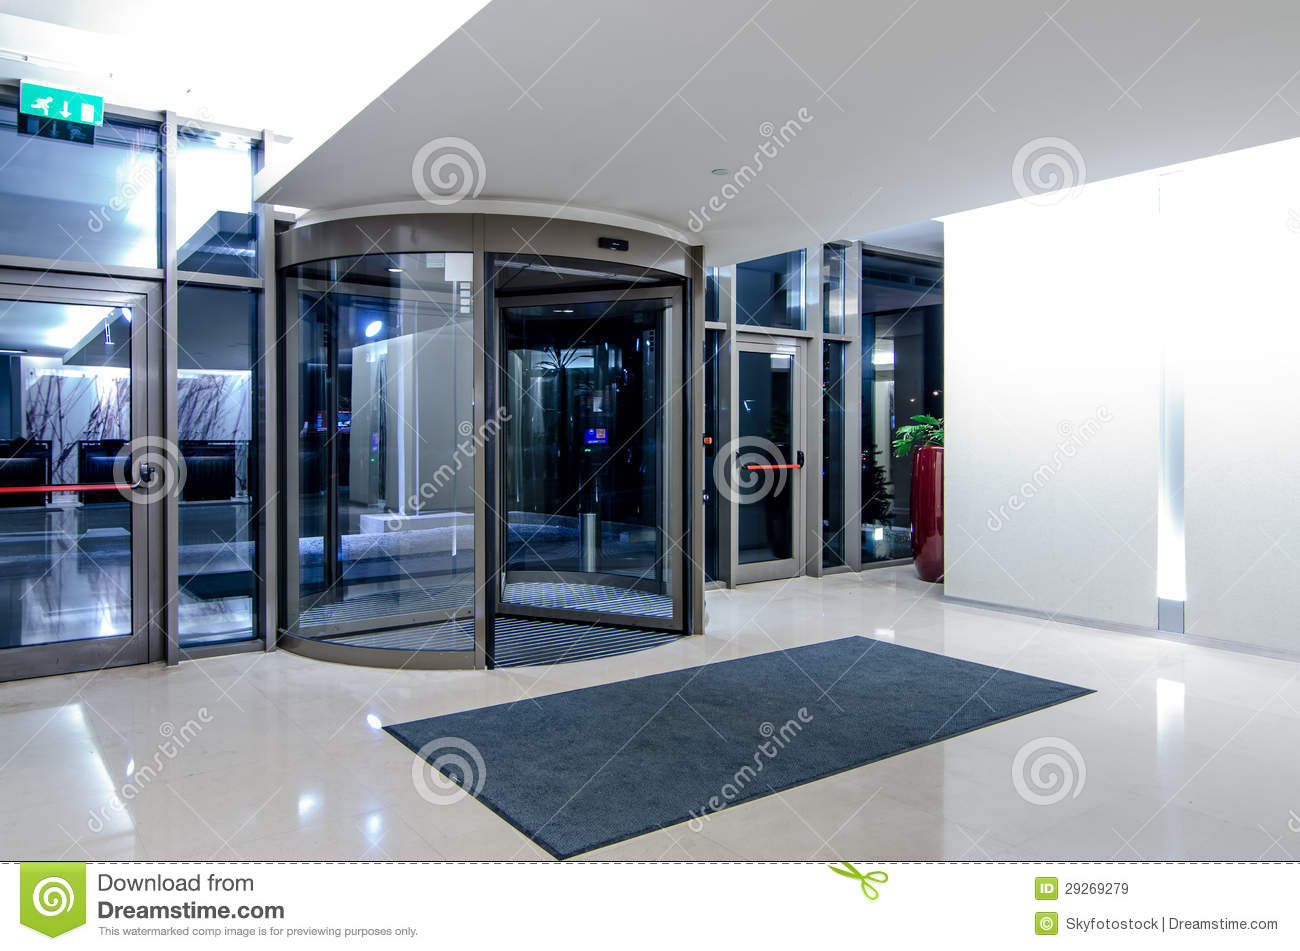 online dating revolving door The pushy guy's story can help you  i was big on avoiding the revolving door  stay tuned for more of my crazy online dating stories on.